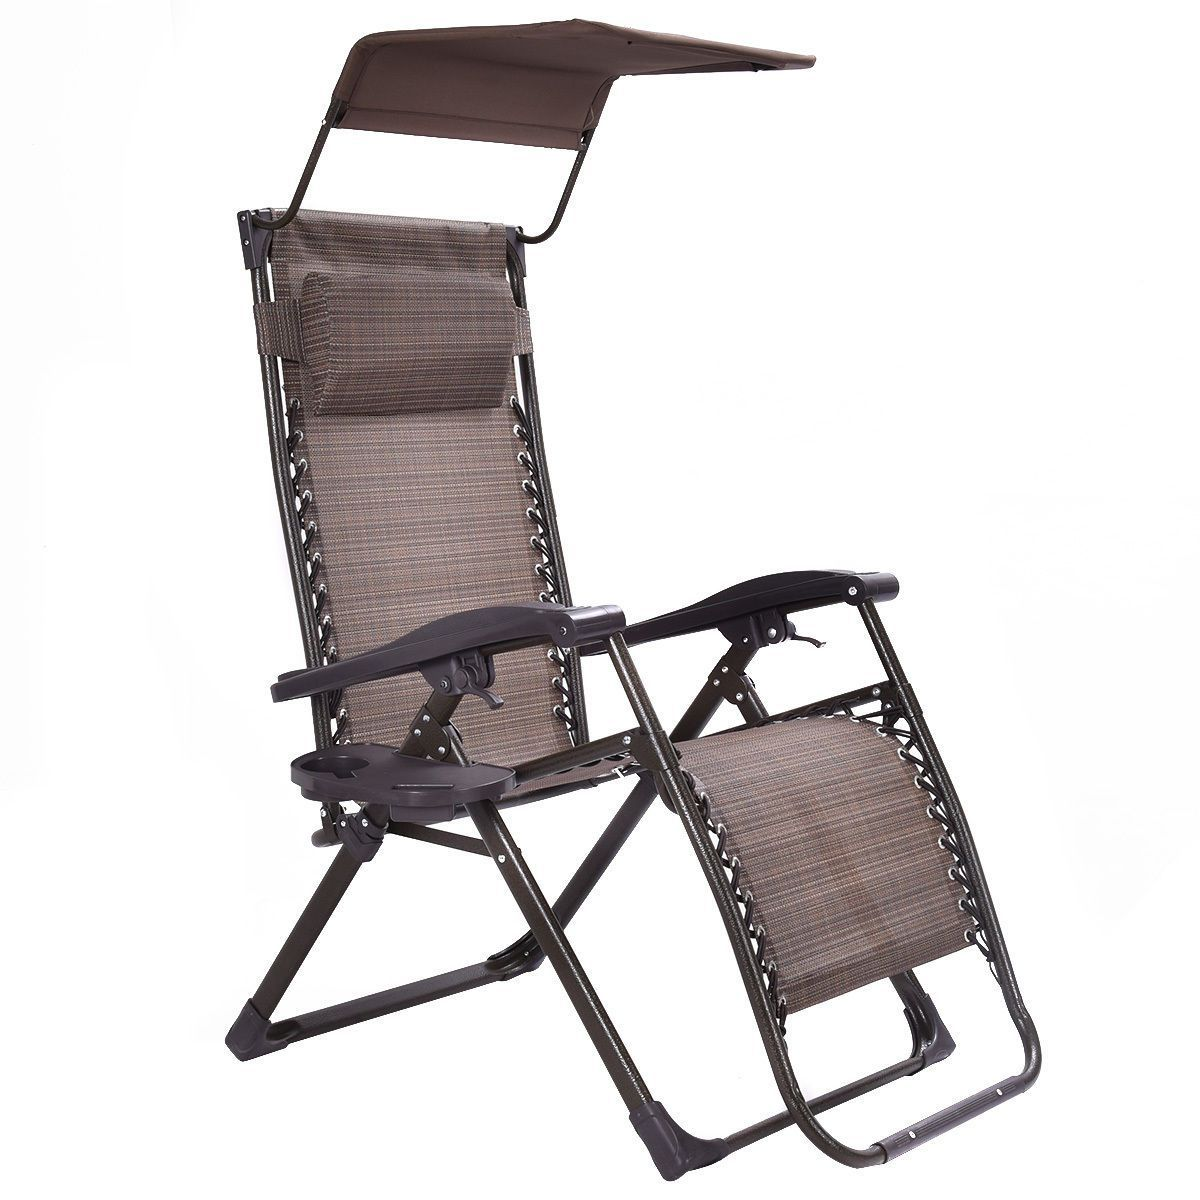 Folding Zero Gravity Reclining Outdoor Chair With Canopy Usd 129 99 Bododa Bododastore Fur Zero Gravity Chair Outdoor Reclining Outdoor Chair Garden Chairs